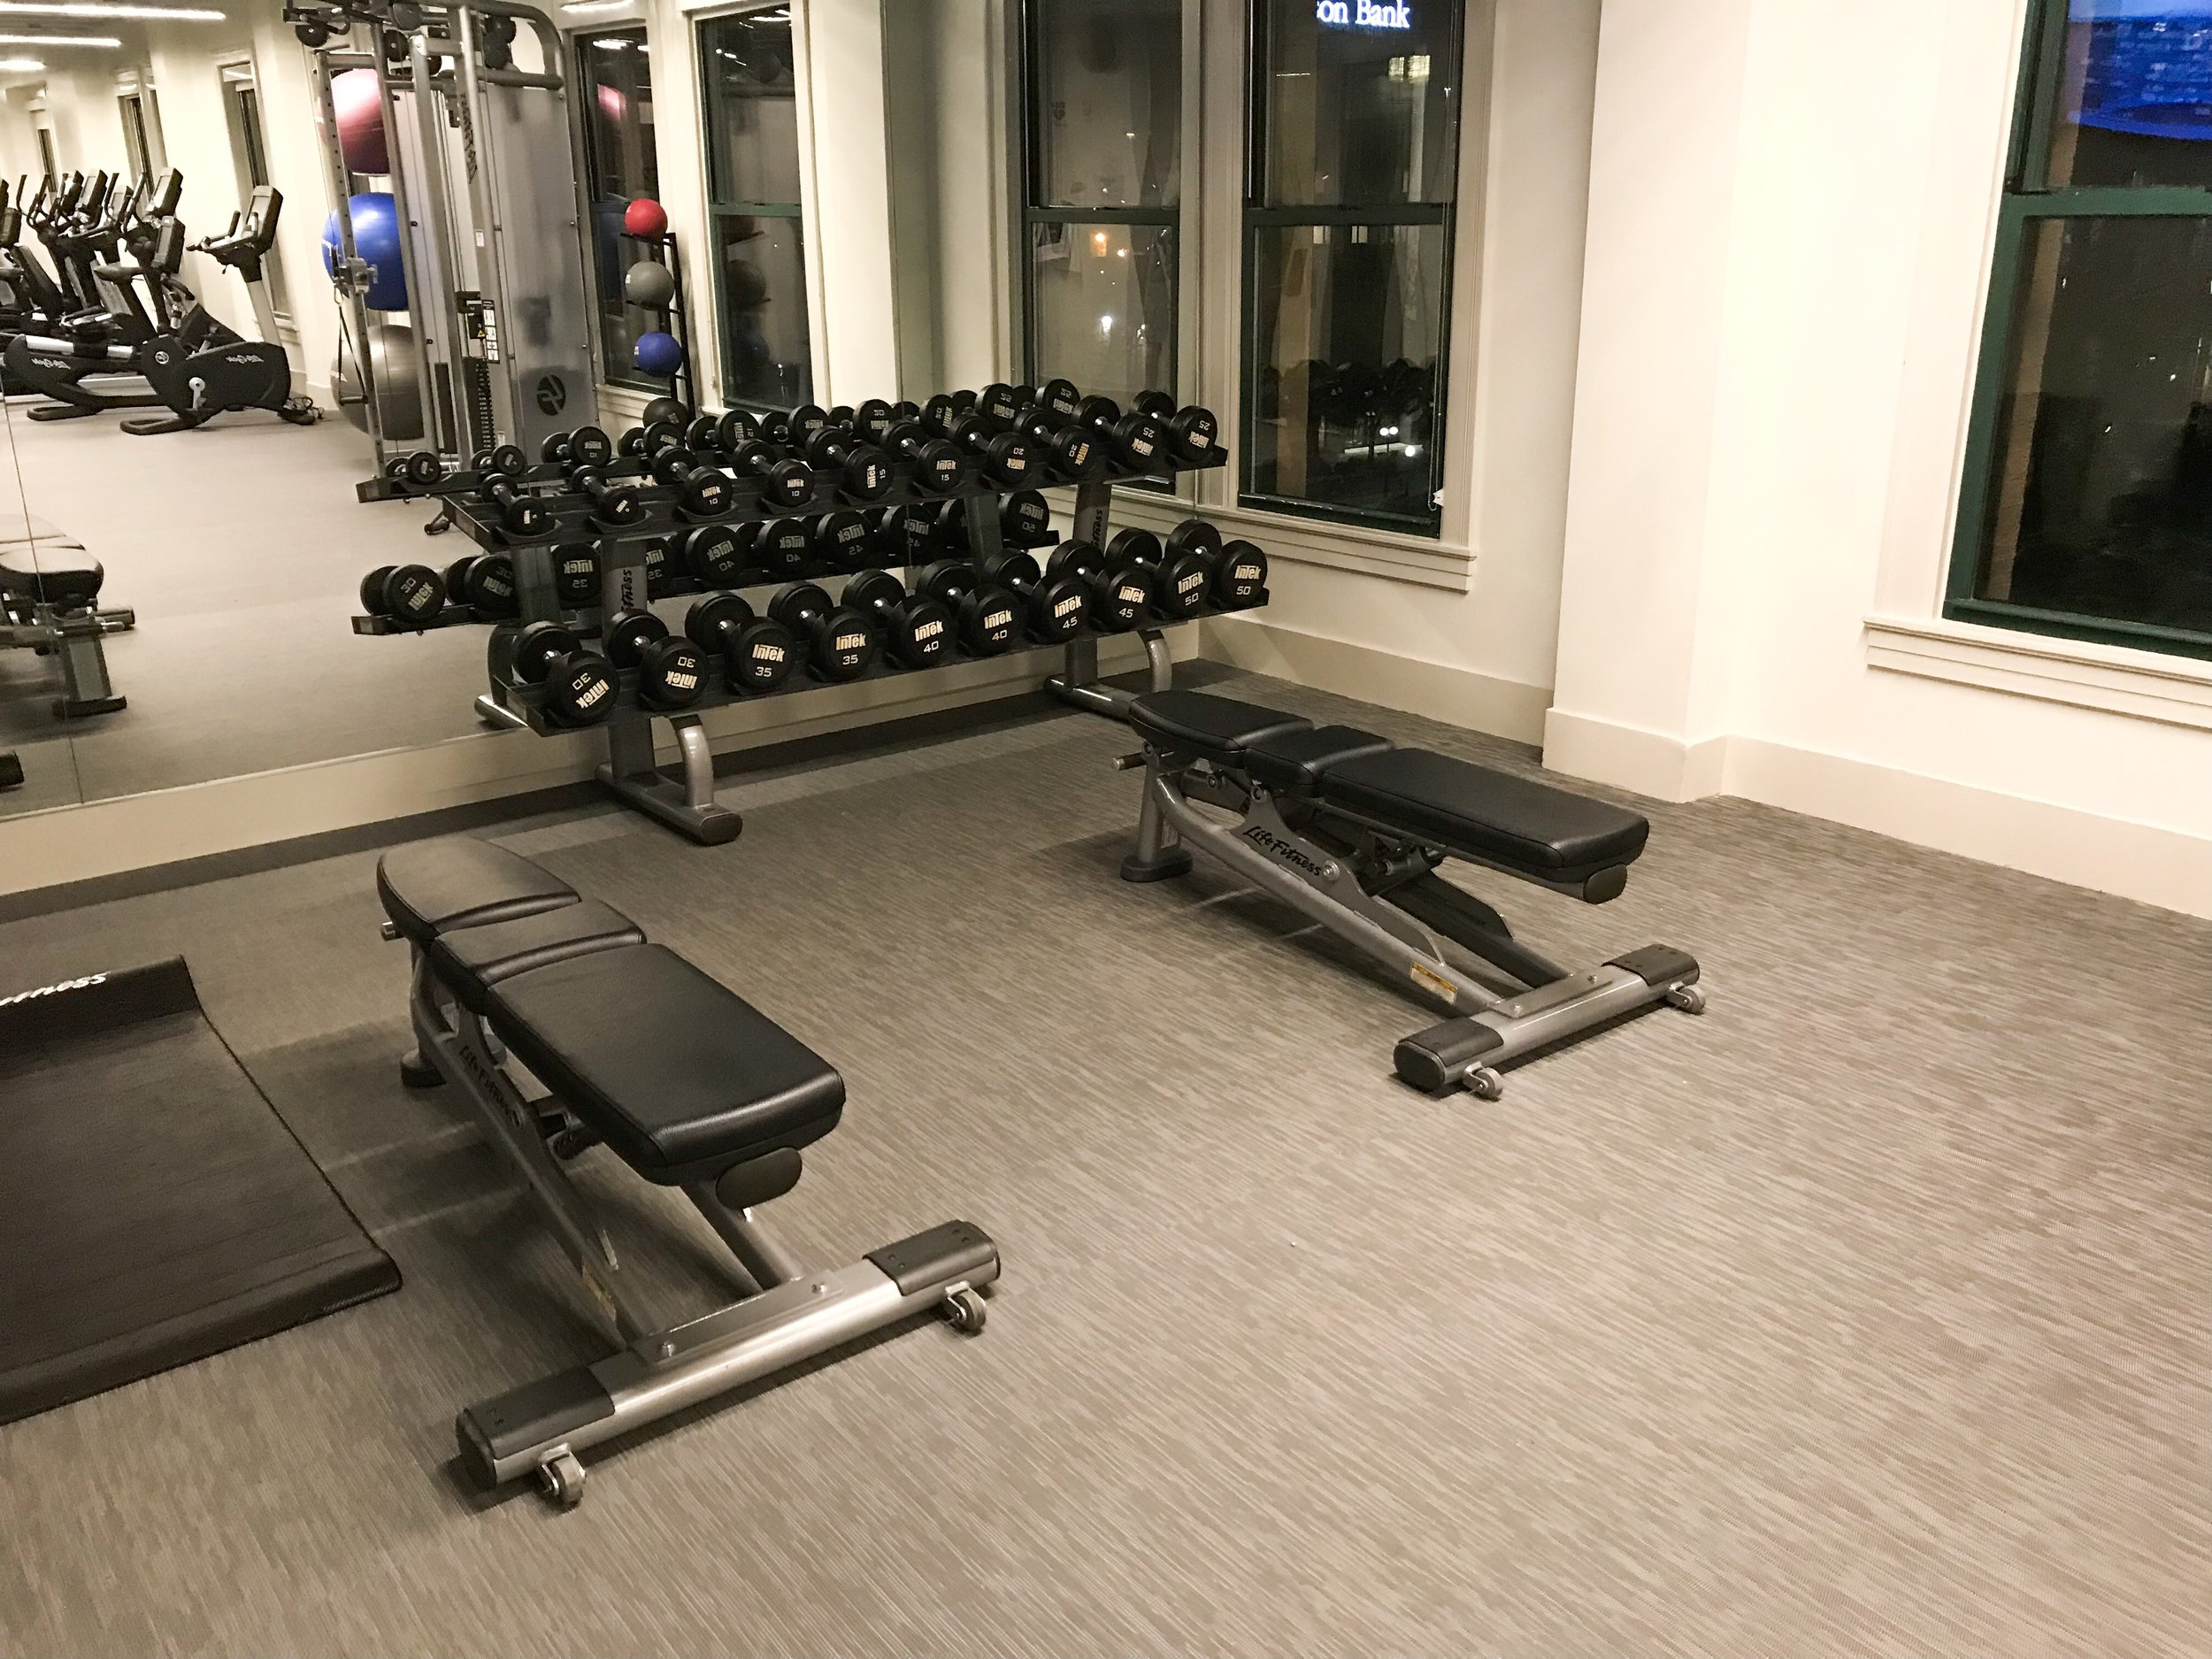 The workout room had a large selection of free weights.